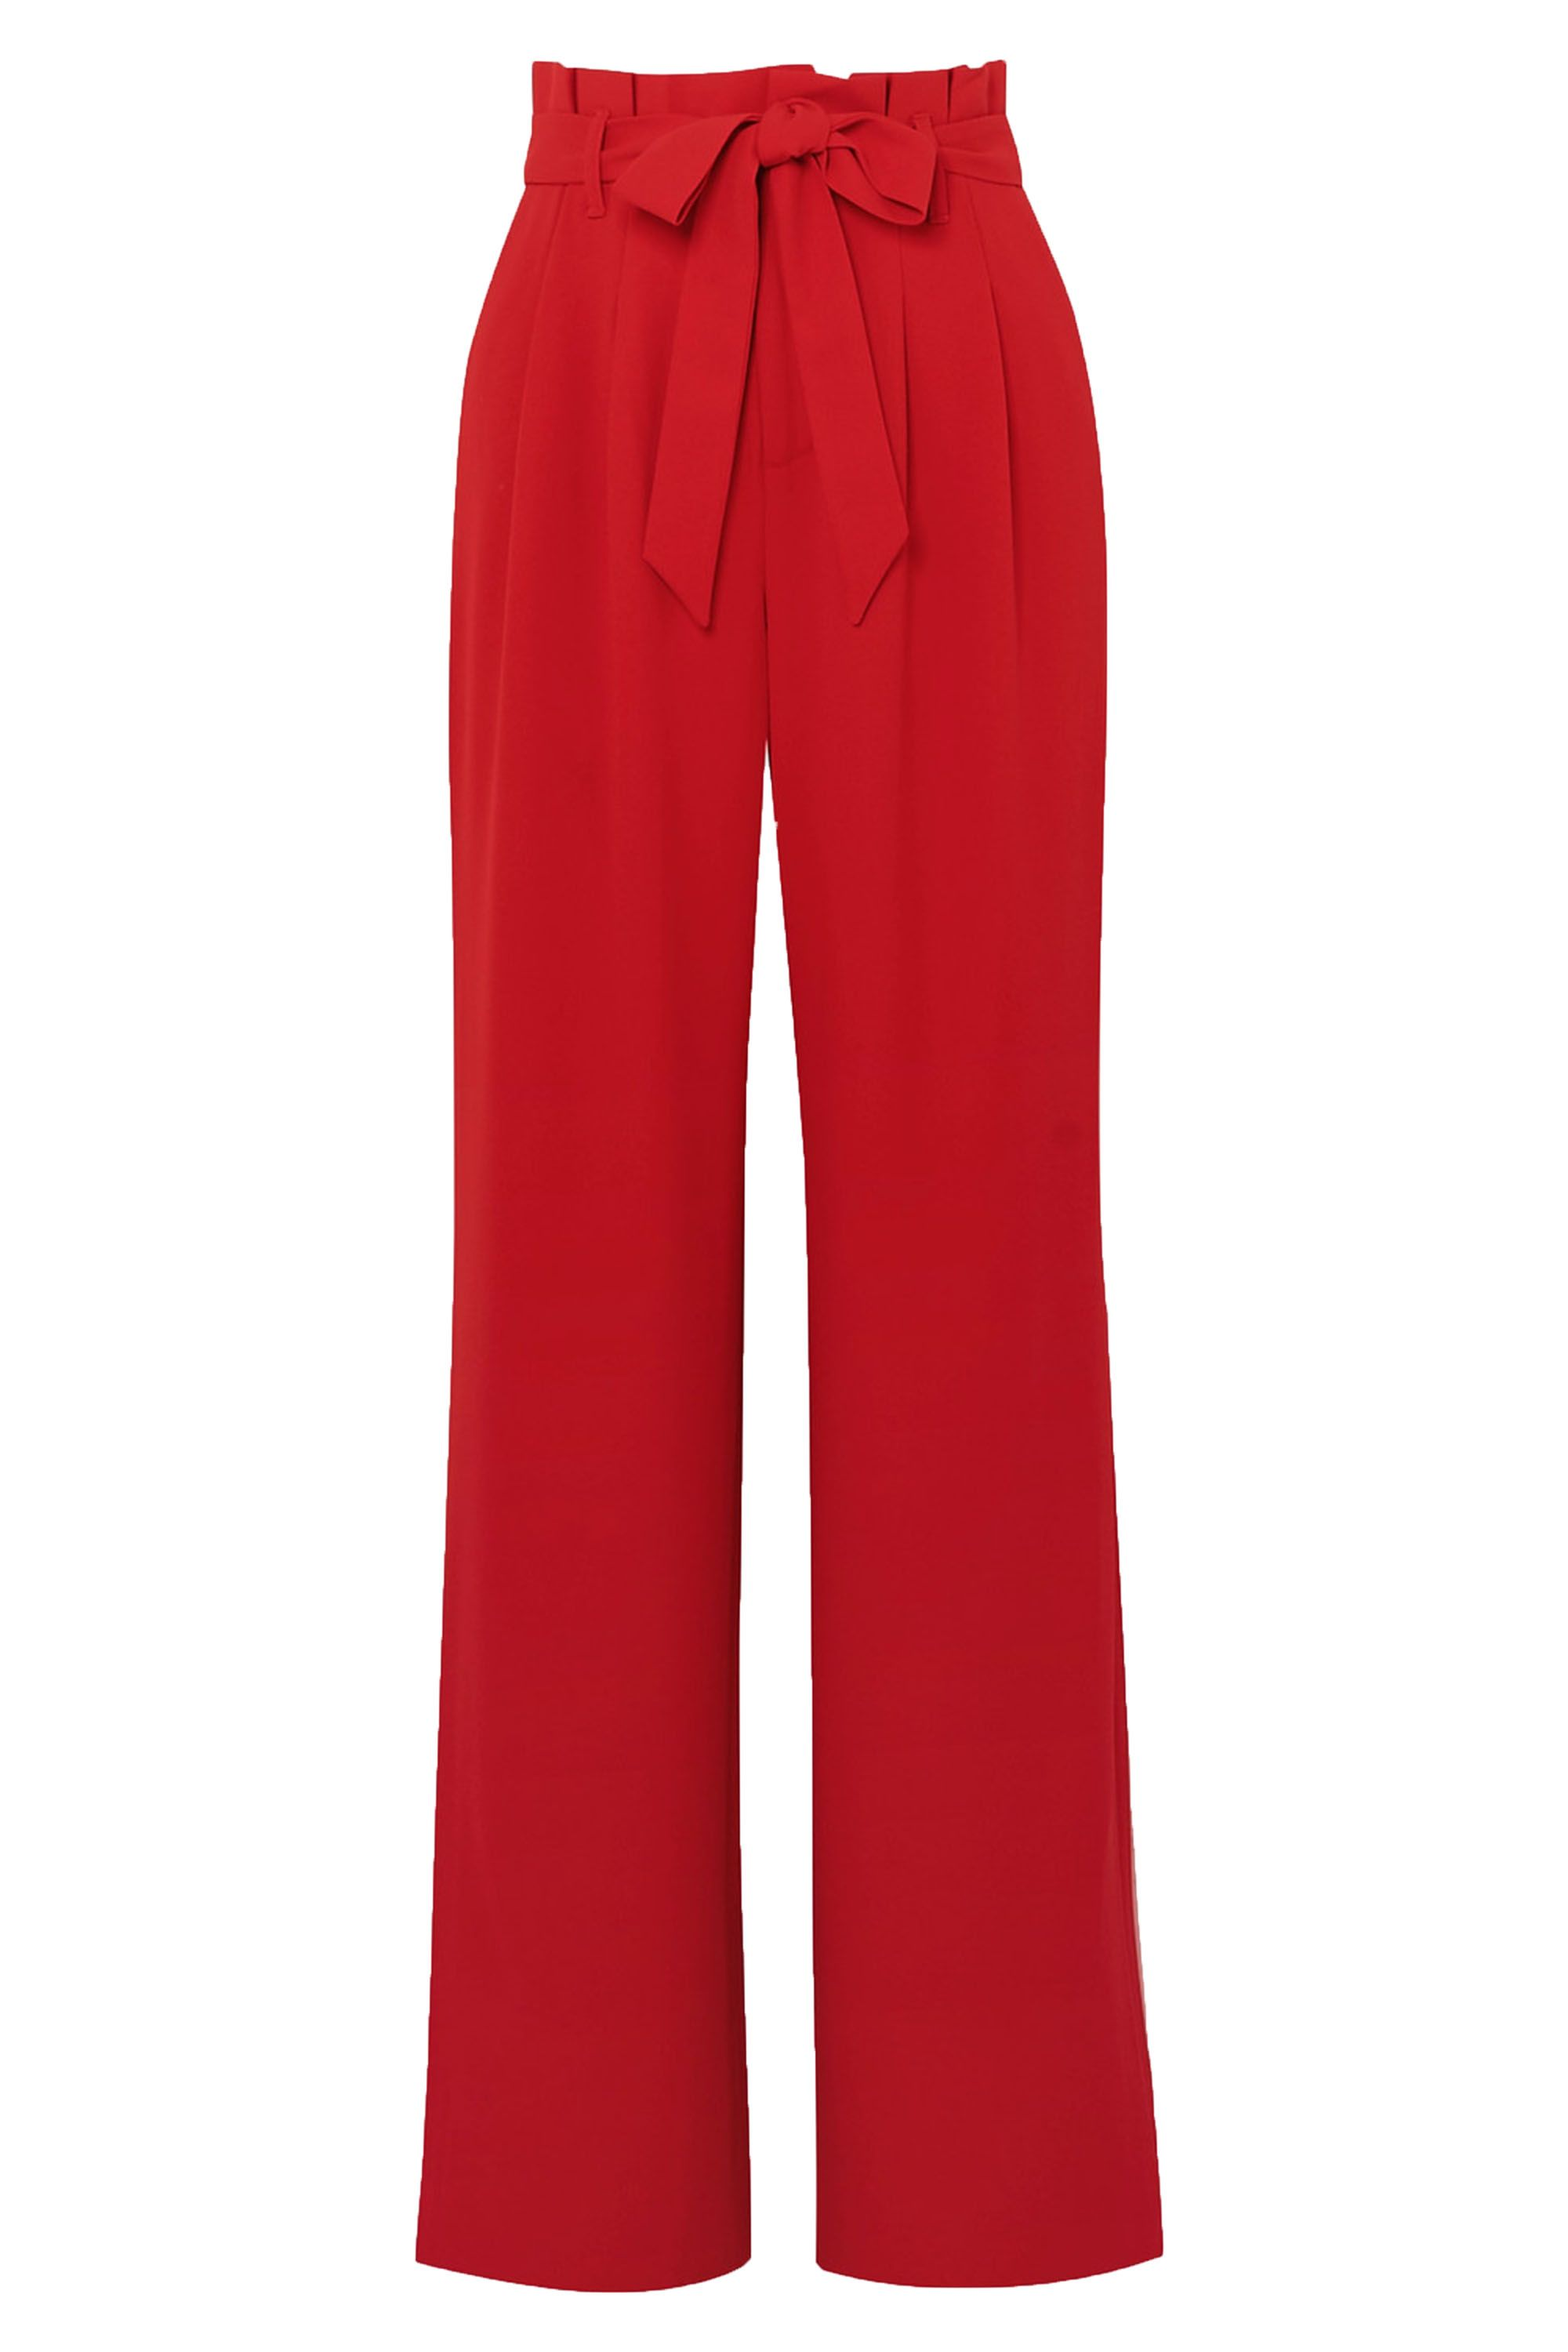 ad3e2bb105ef Wide leg trousers trend - how to wear wide leg trousers